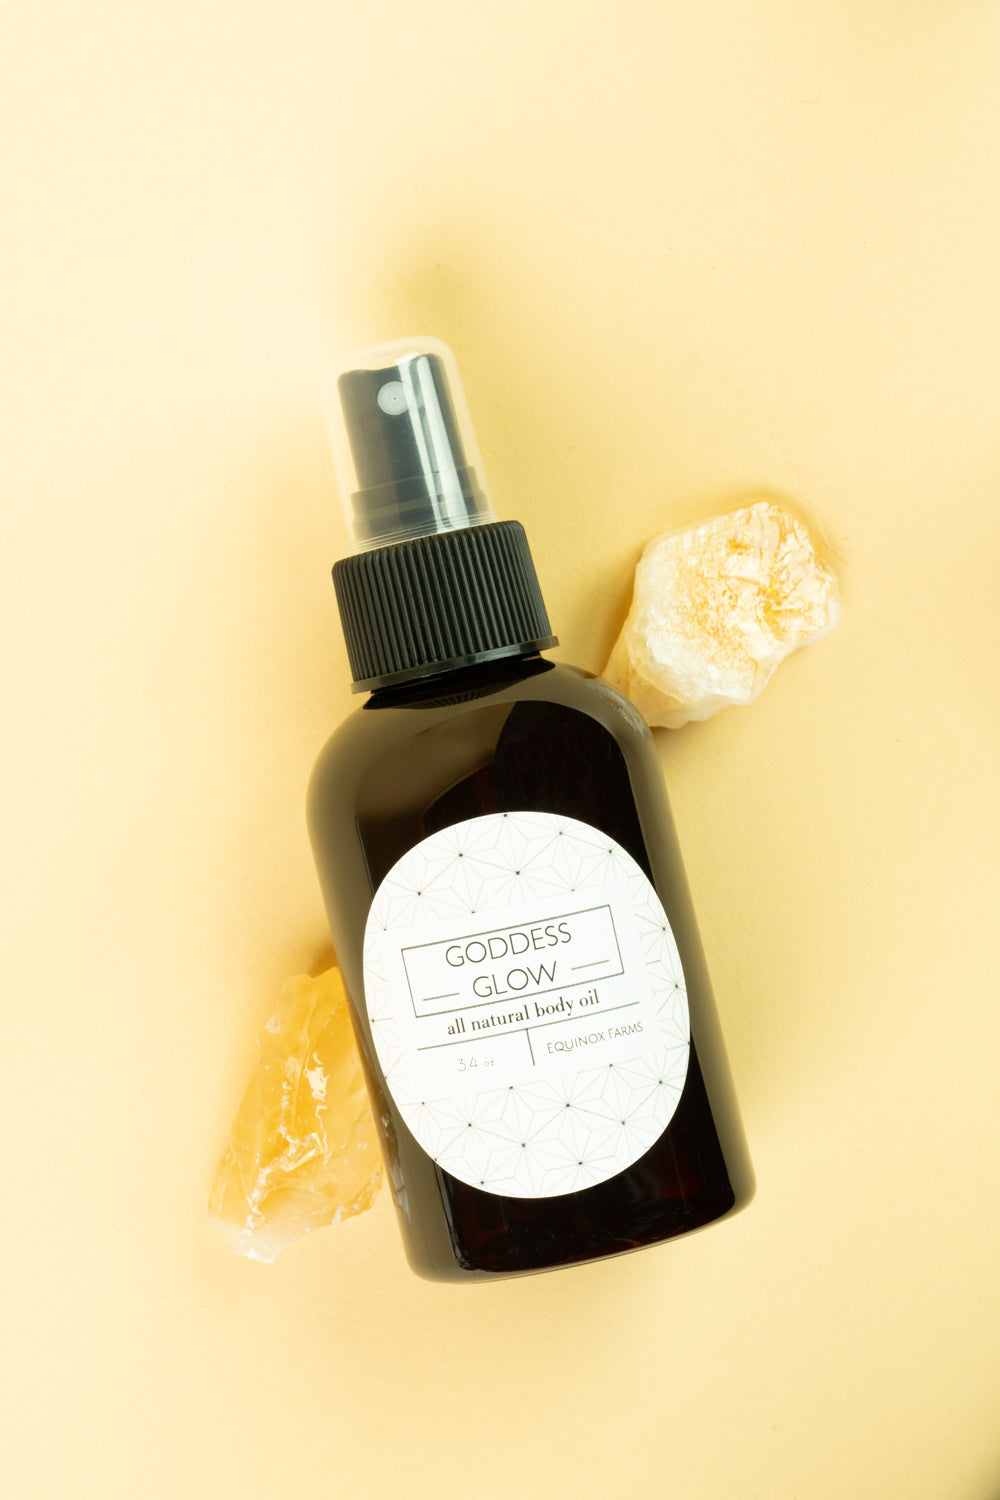 Goddess Glow Dry Body Oil